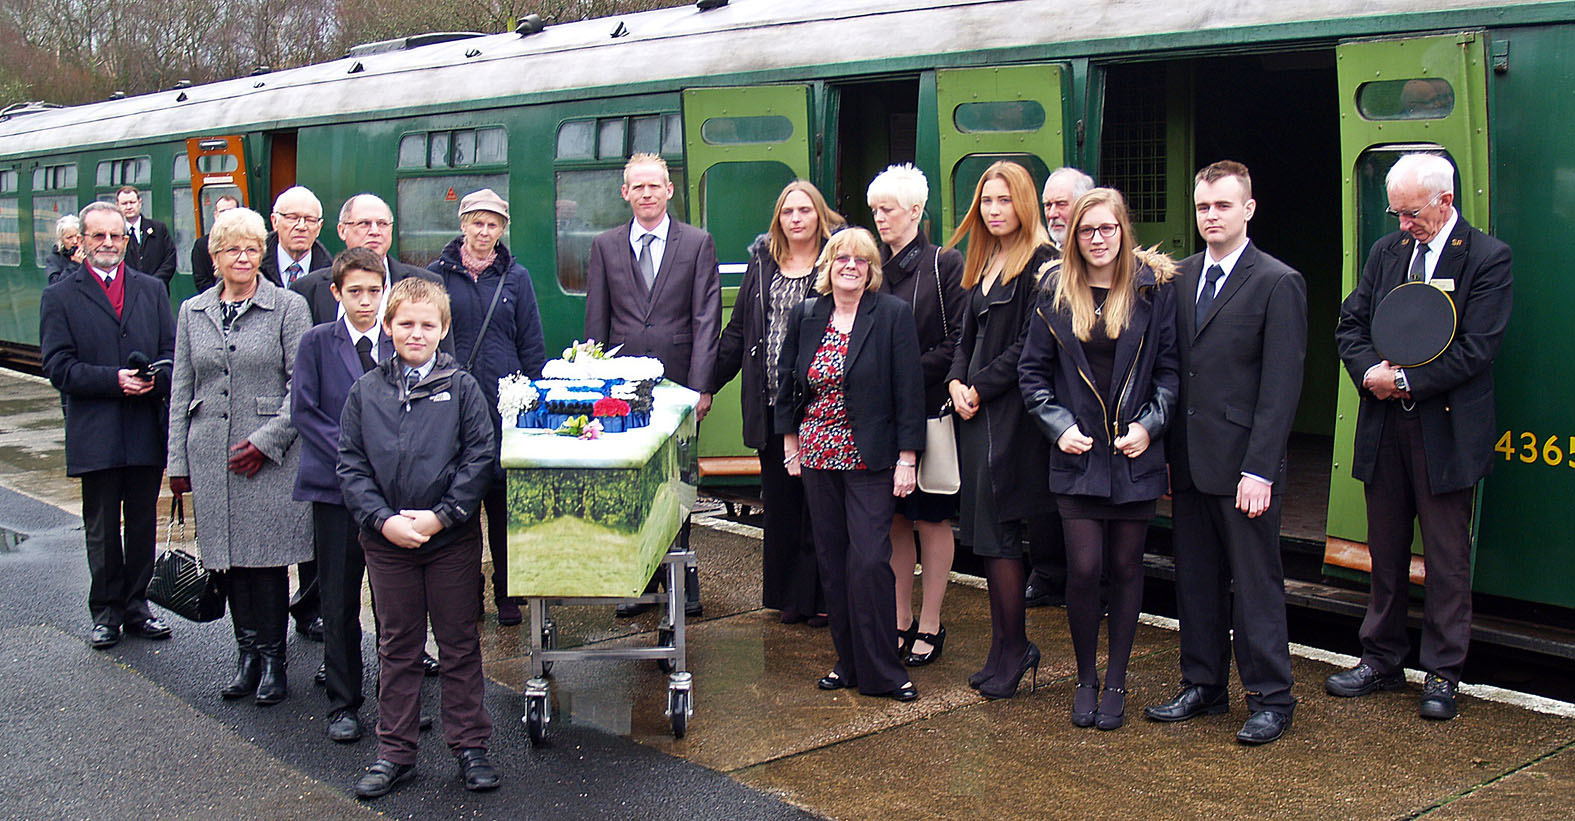 Rail enthusiast Mike Stollery who volunteered on the Swanage steam railway in Dorset for 44 years was taken to his funeral in a carriage he had restored himself. His coffin is pictured here before his final journey with relatives and friends.